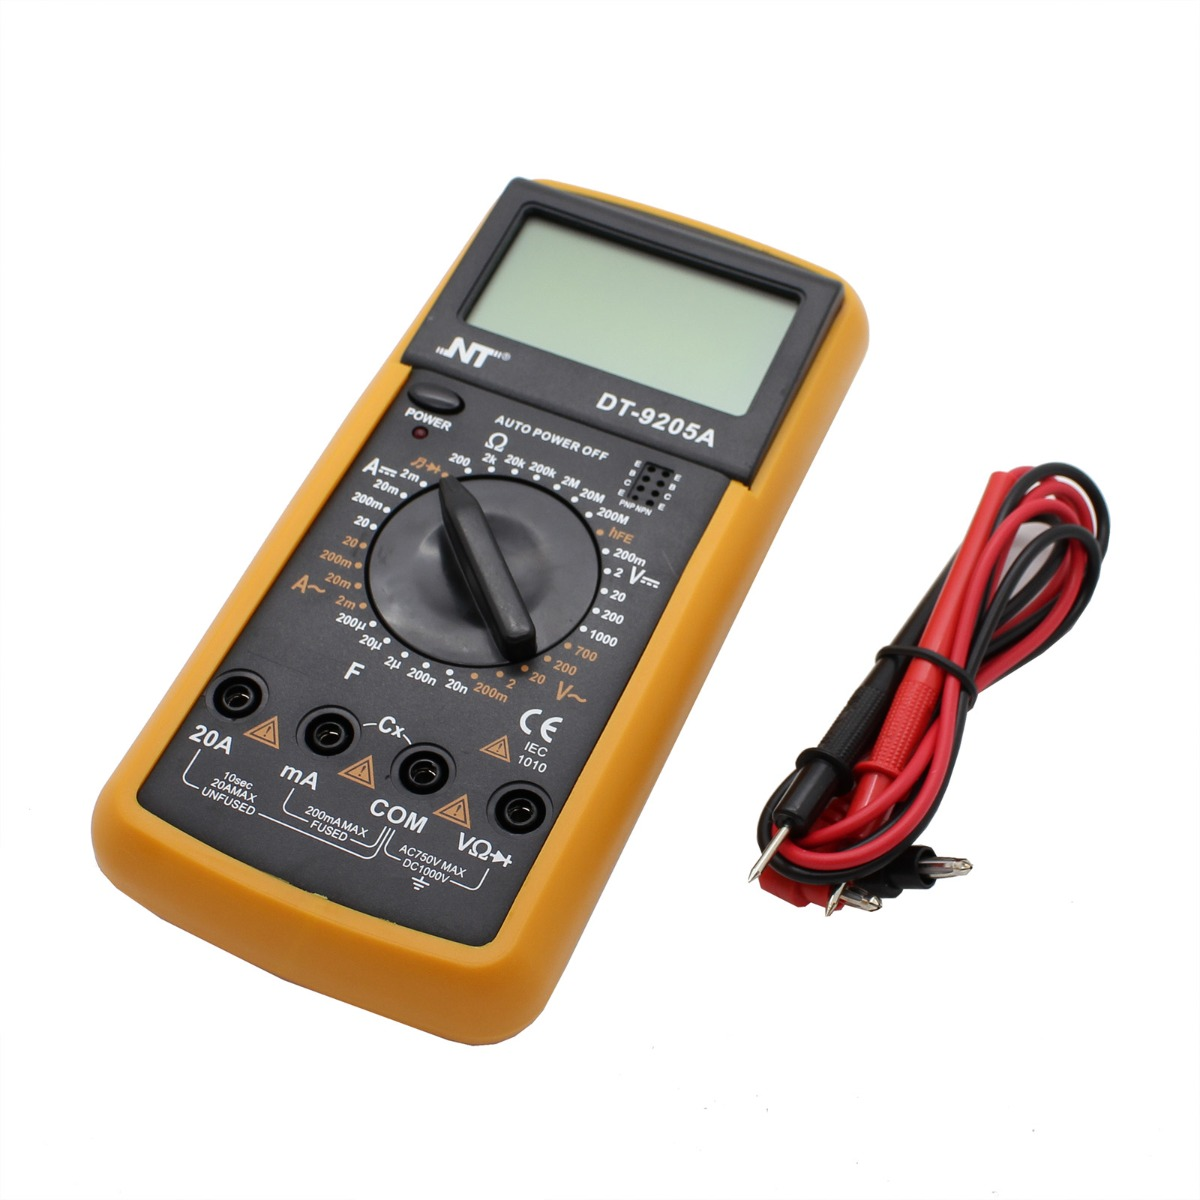 new digital lcd multimeter nt 9205 voltmeter ammeter ohmmeter ohm volt tester ebay. Black Bedroom Furniture Sets. Home Design Ideas